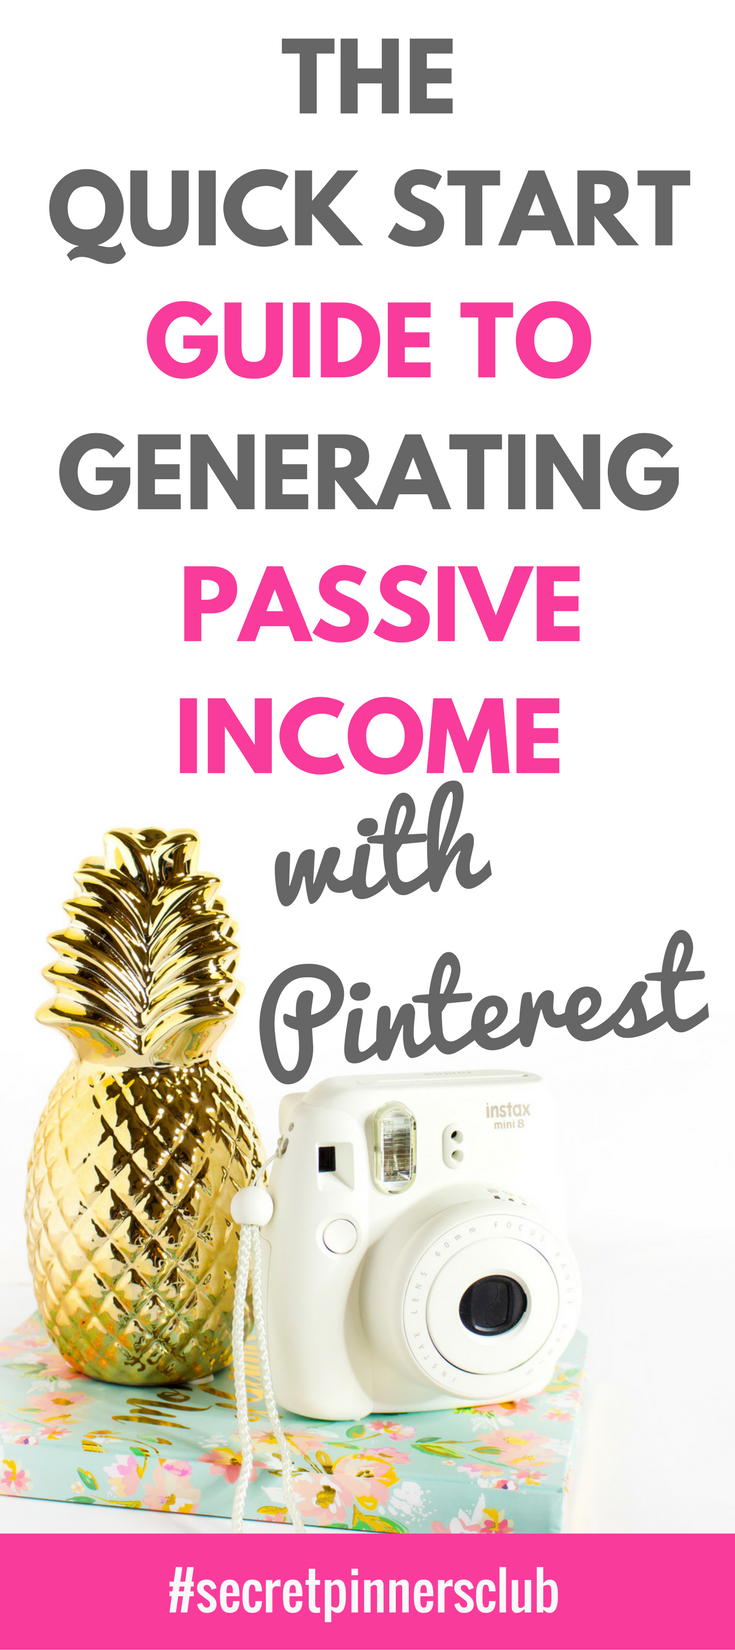 The Quick Start Guide to Generating Passive Income with Pinterest